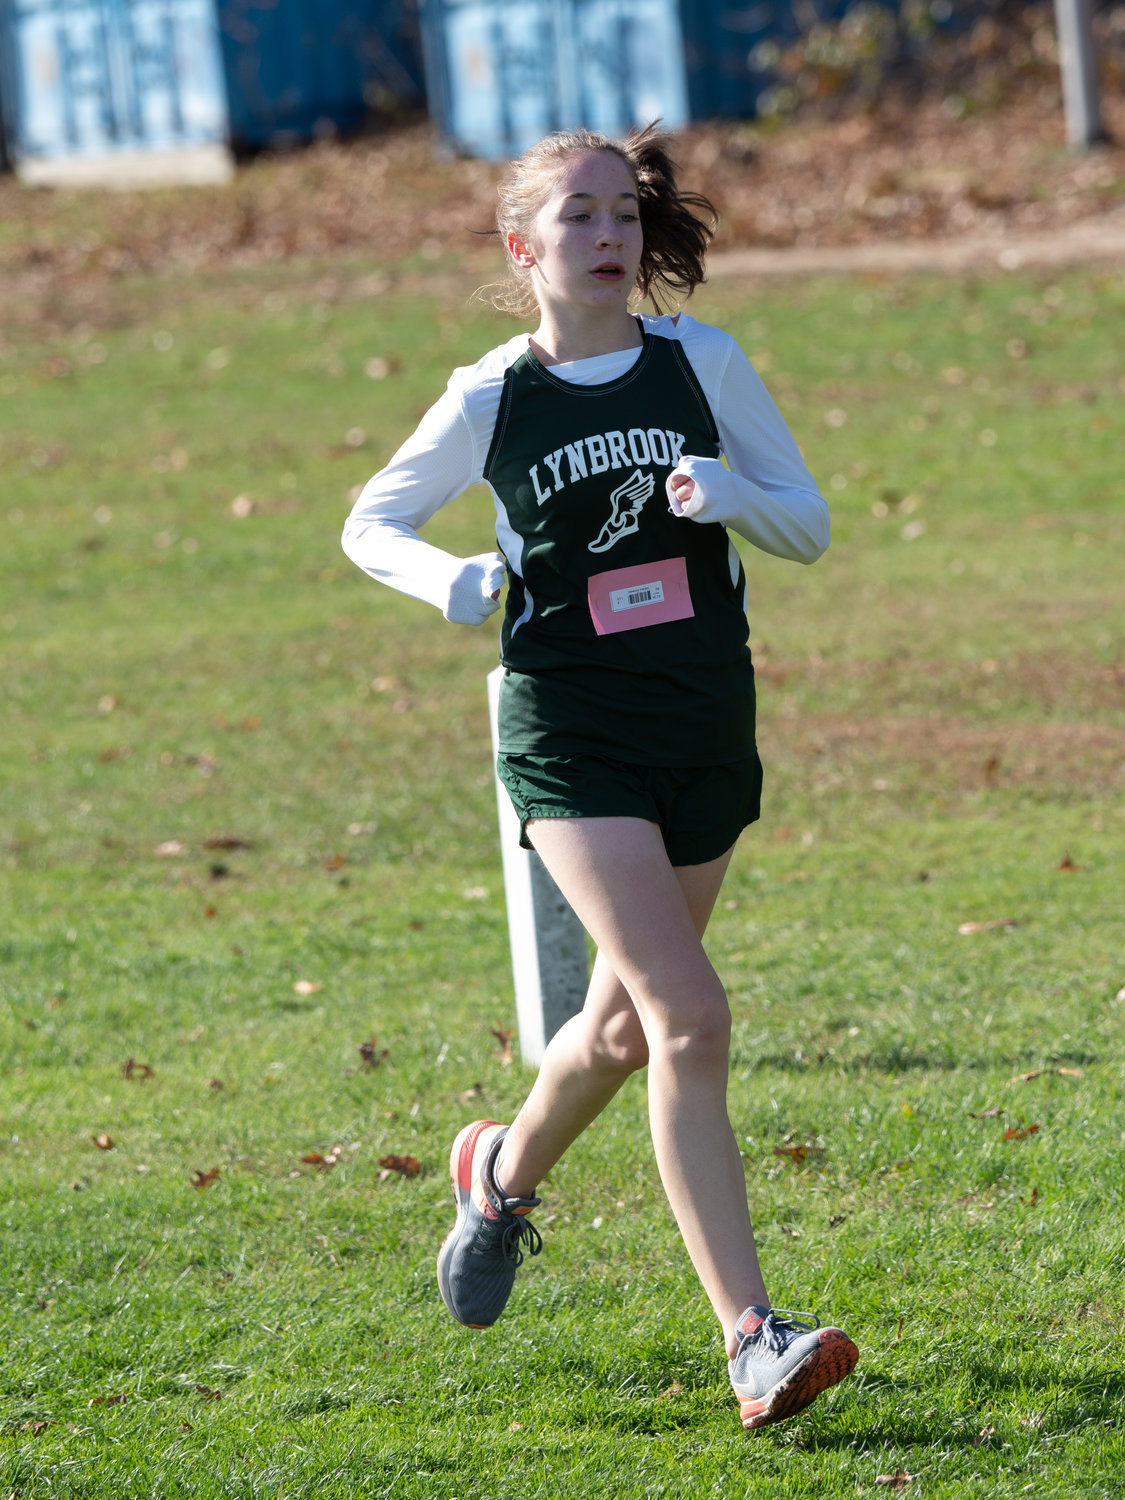 Freshman Kaelyn O'Brien thrived this year for Lynbrook's girls' cross country team, which captured its first county title on Nov. 2